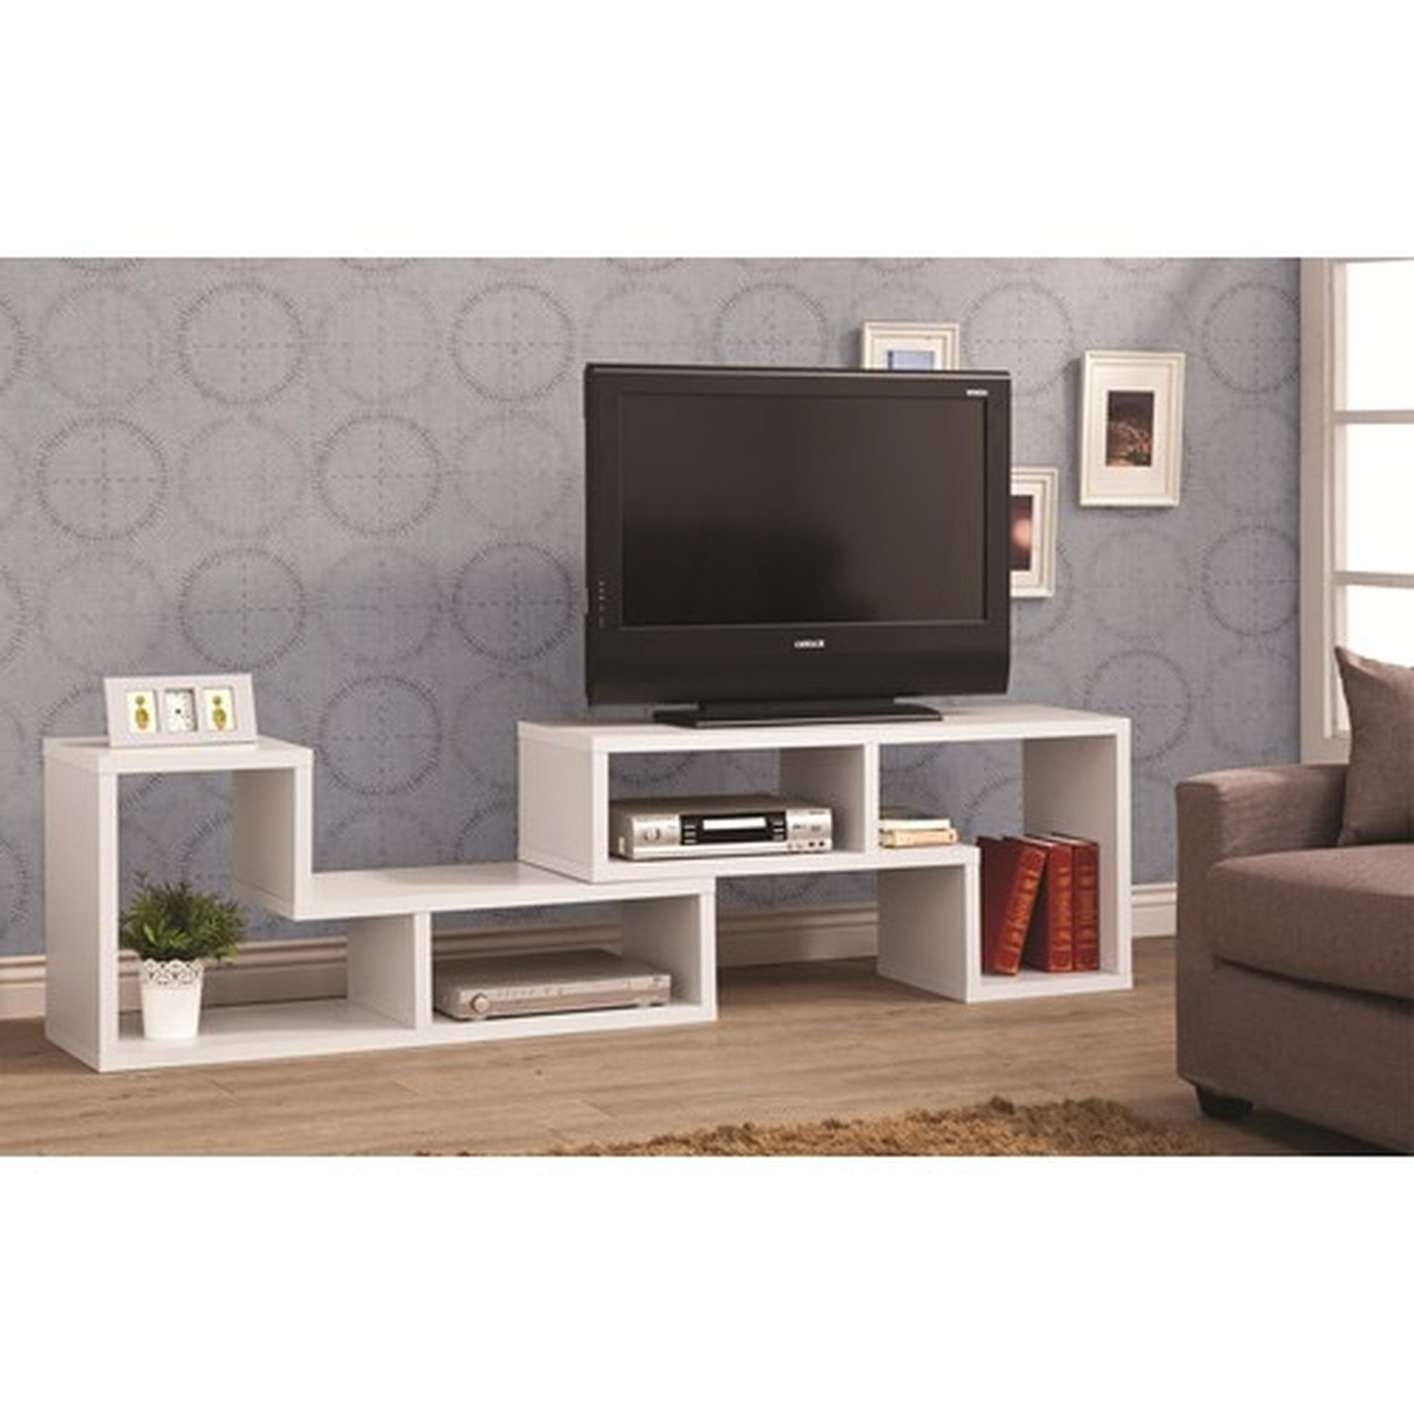 White Wood Tv Stand – Steal A Sofa Furniture Outlet Los Angeles Ca Within Modern Wooden Tv Stands (View 15 of 15)